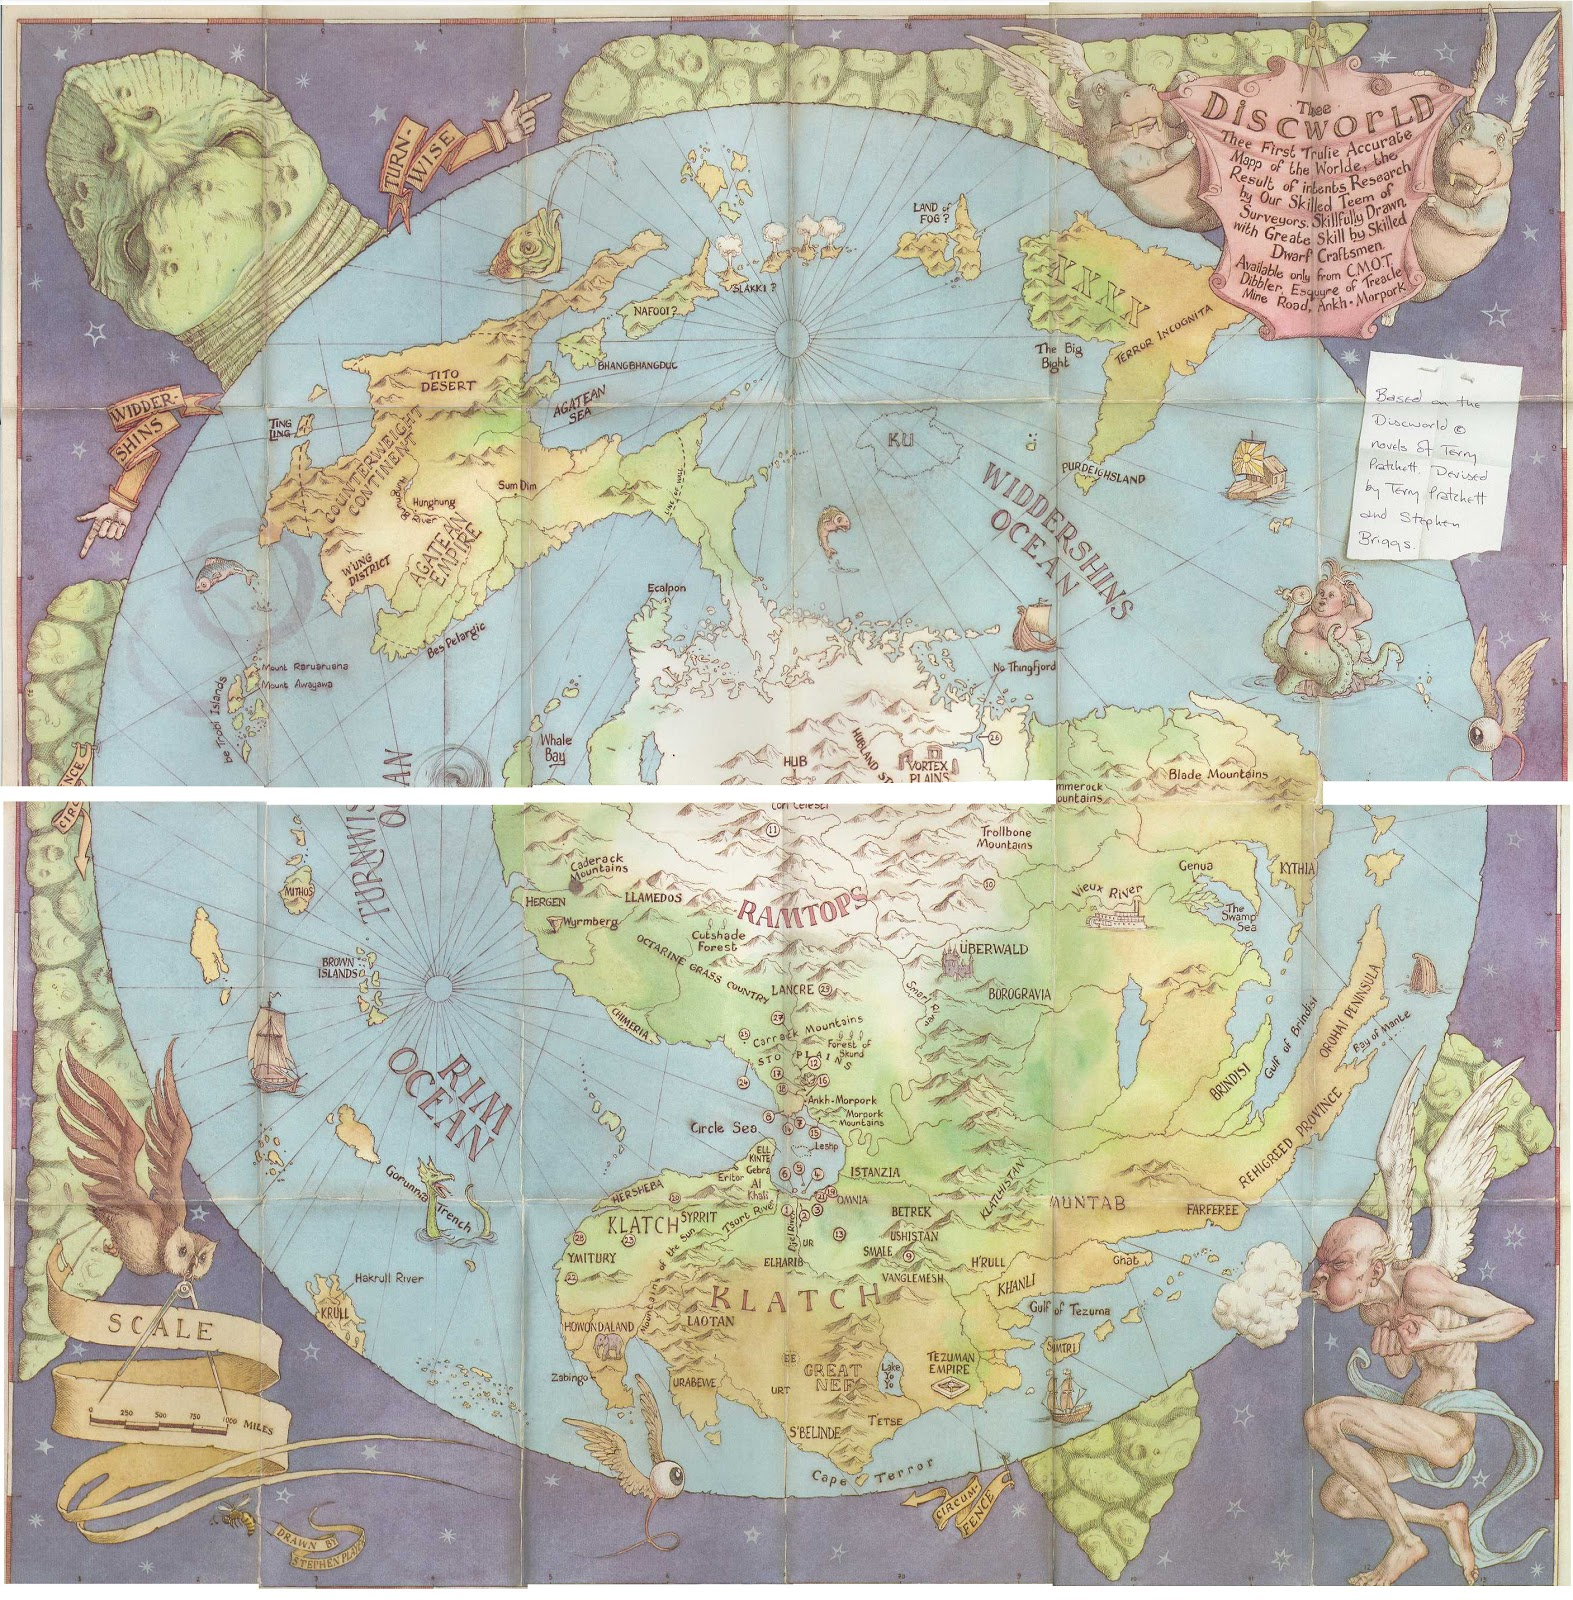 Old maps expeditions and explorations discworld discworld gumiabroncs Choice Image